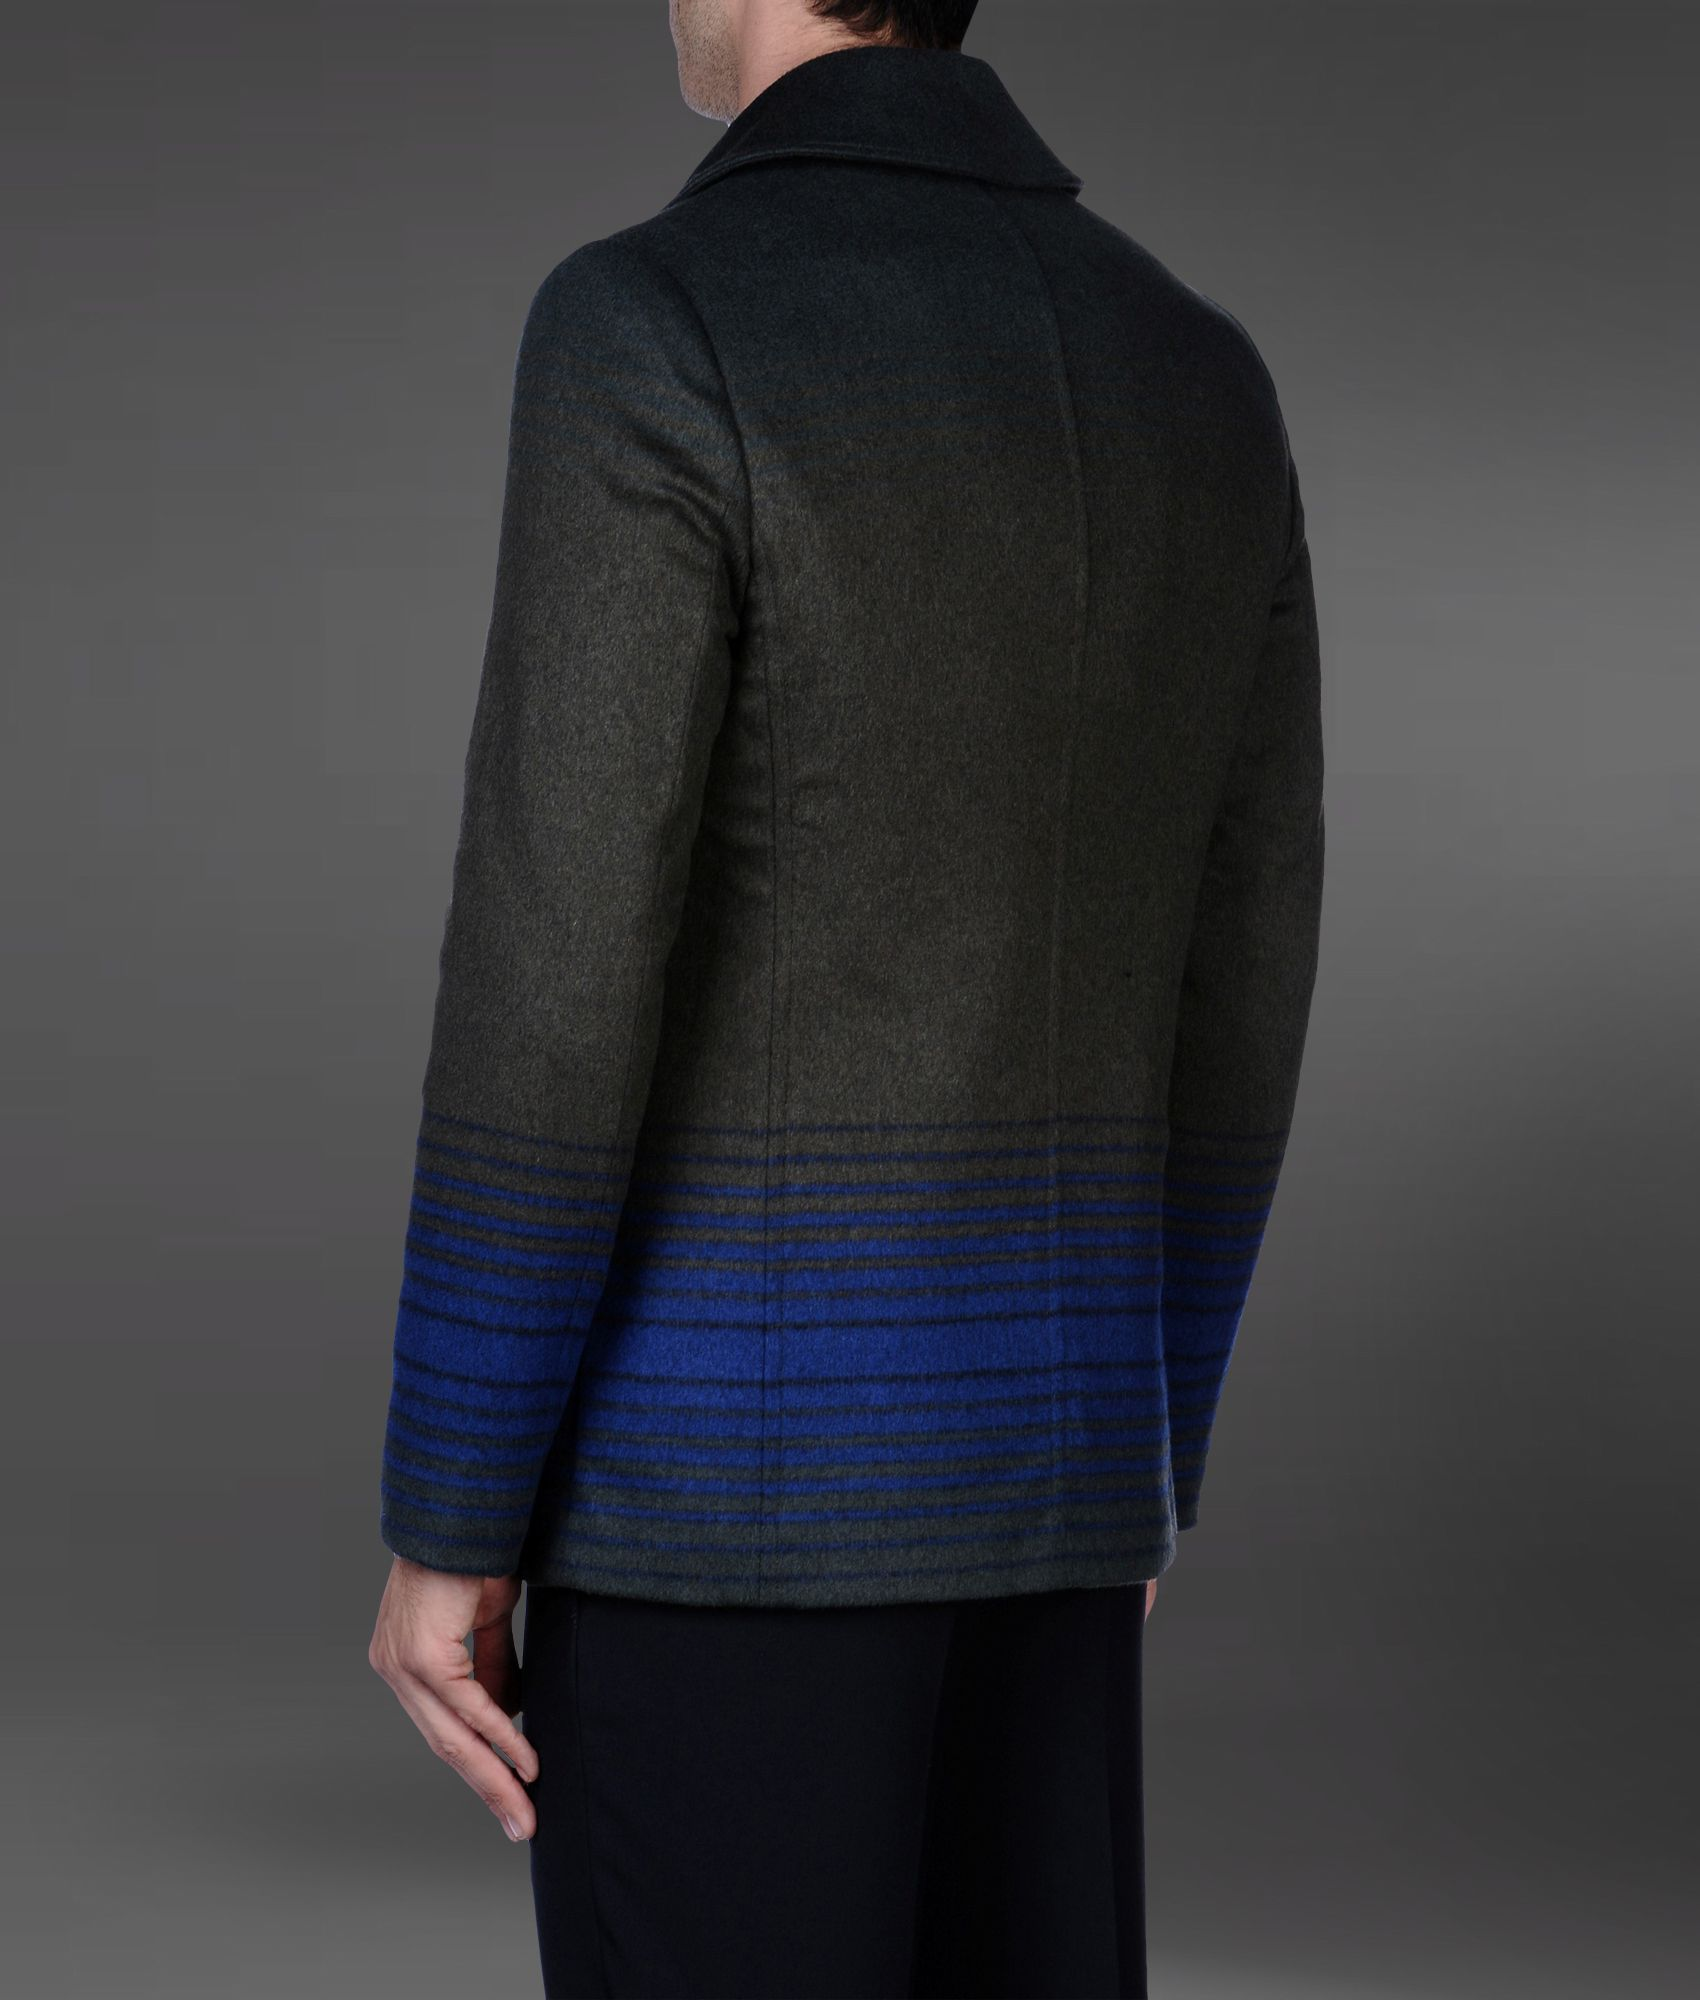 b8686aa97364d Lyst - Emporio Armani Double Breasted Pea Coat with Shaded Stripes ...